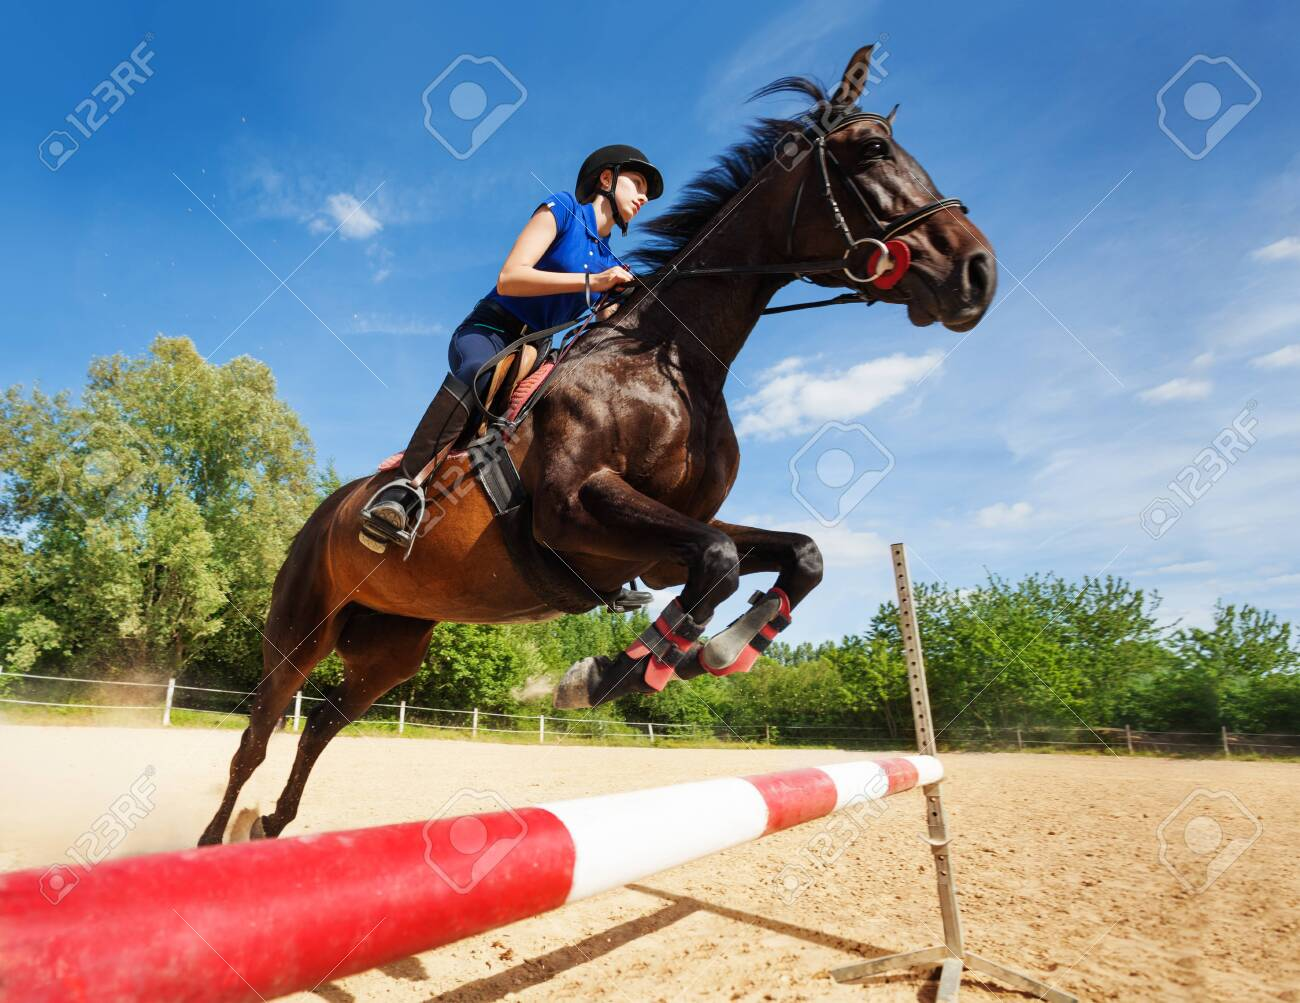 Bay horse with female rider jumping over a hurdle - 129948818